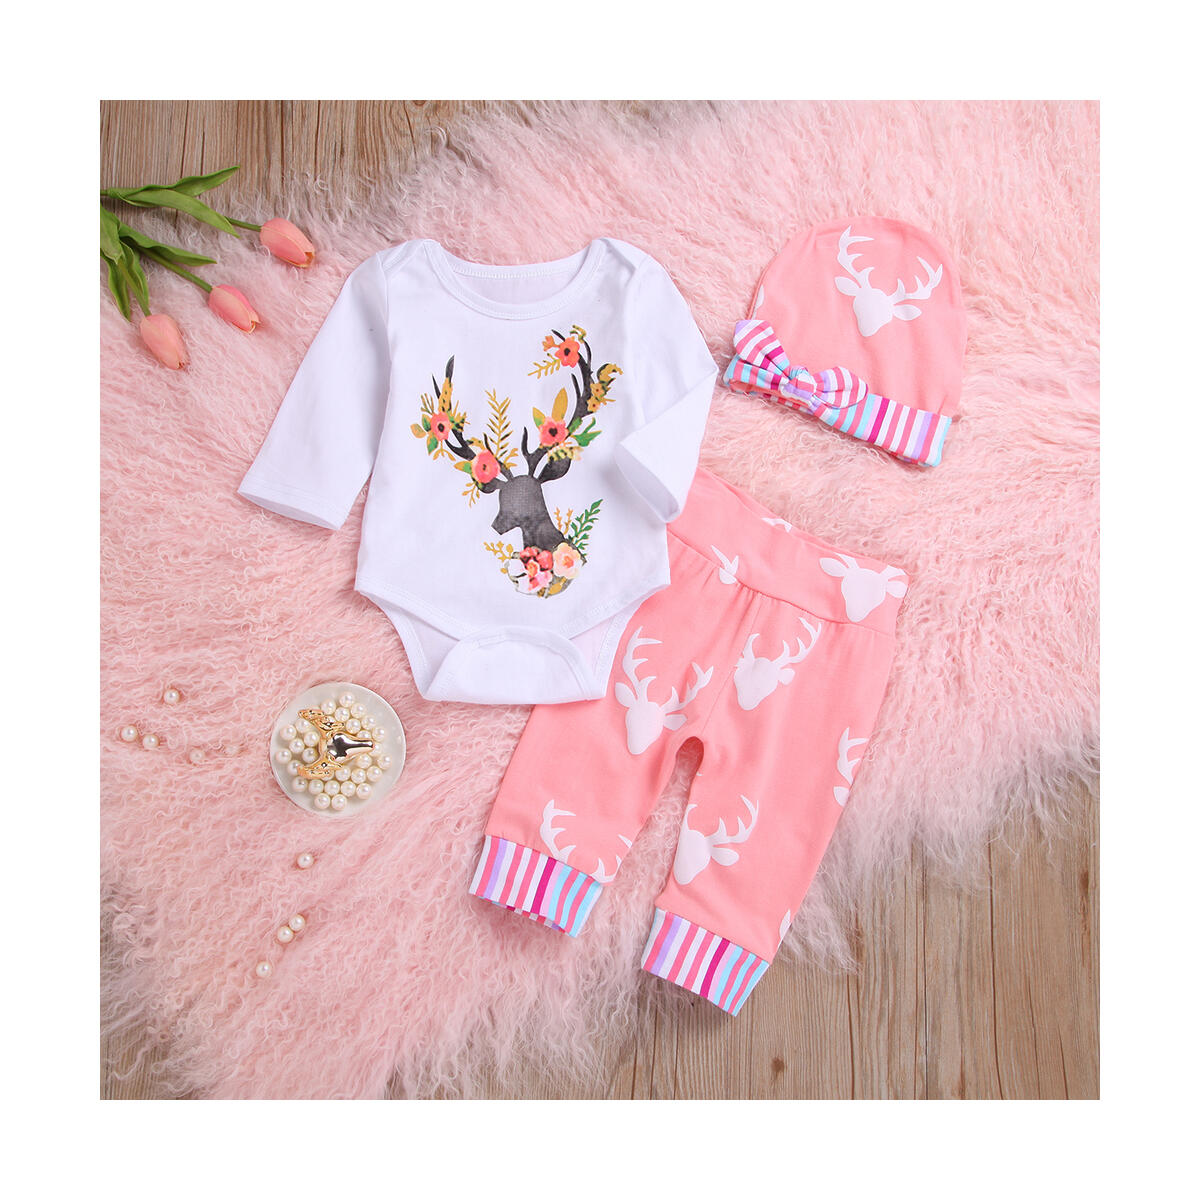 Newborn Baby Girl Floral Clothes 3/4 Sleeve Deer Bodysuit Top Long Pant Hat Outfit Set